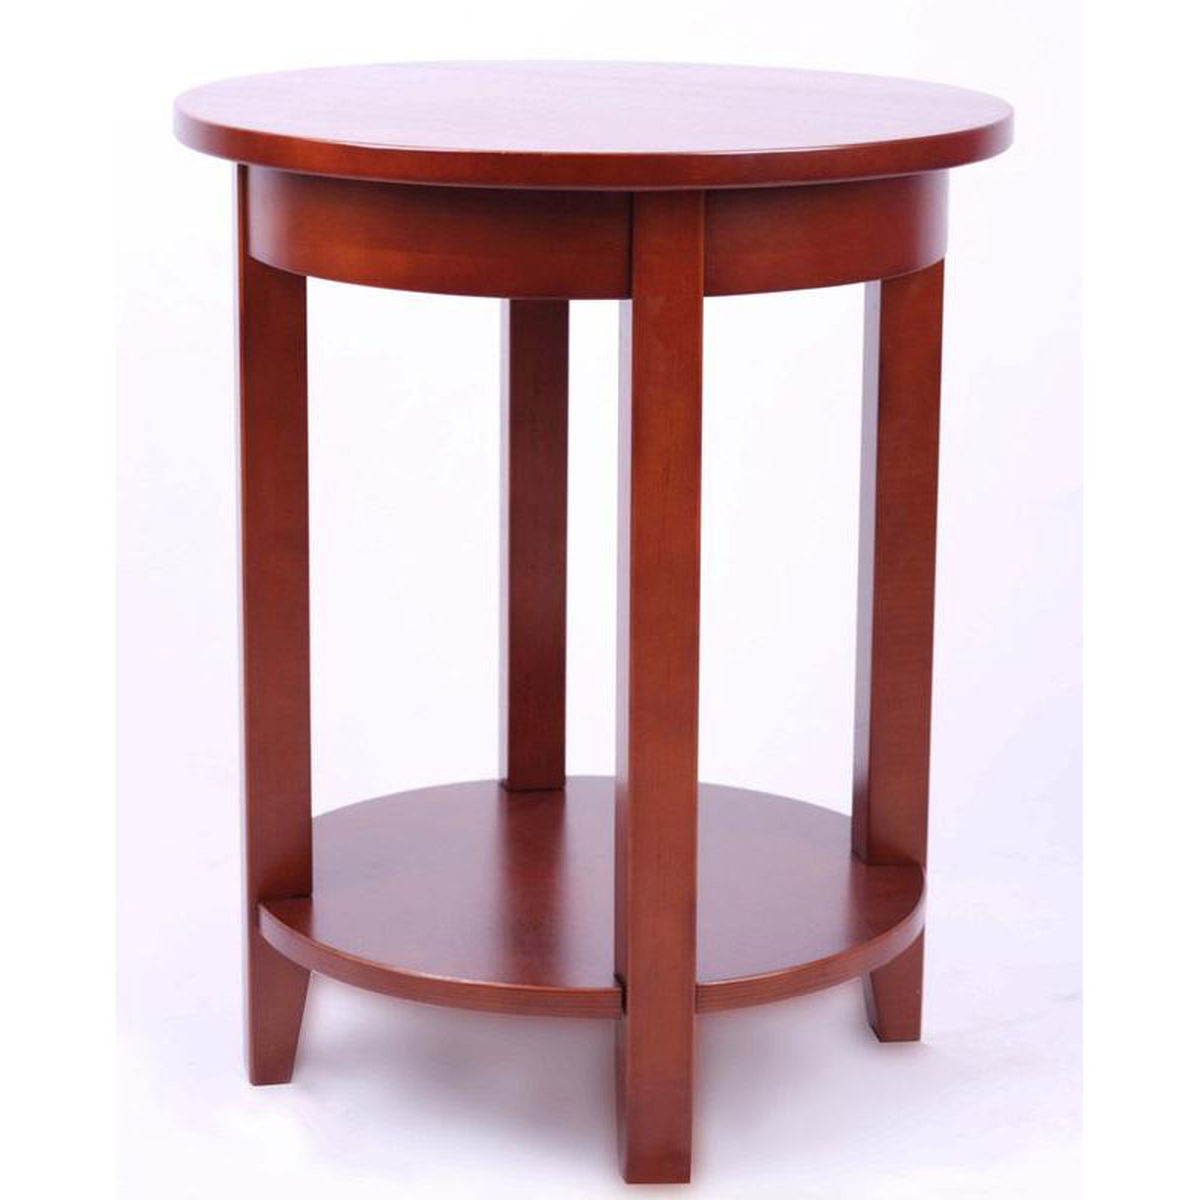 cherry round accent table bizchair bolton furniture bol main red wood our shaker cottage wooden diameter with storage shelf pottery barn industrial side drawers living room kohls